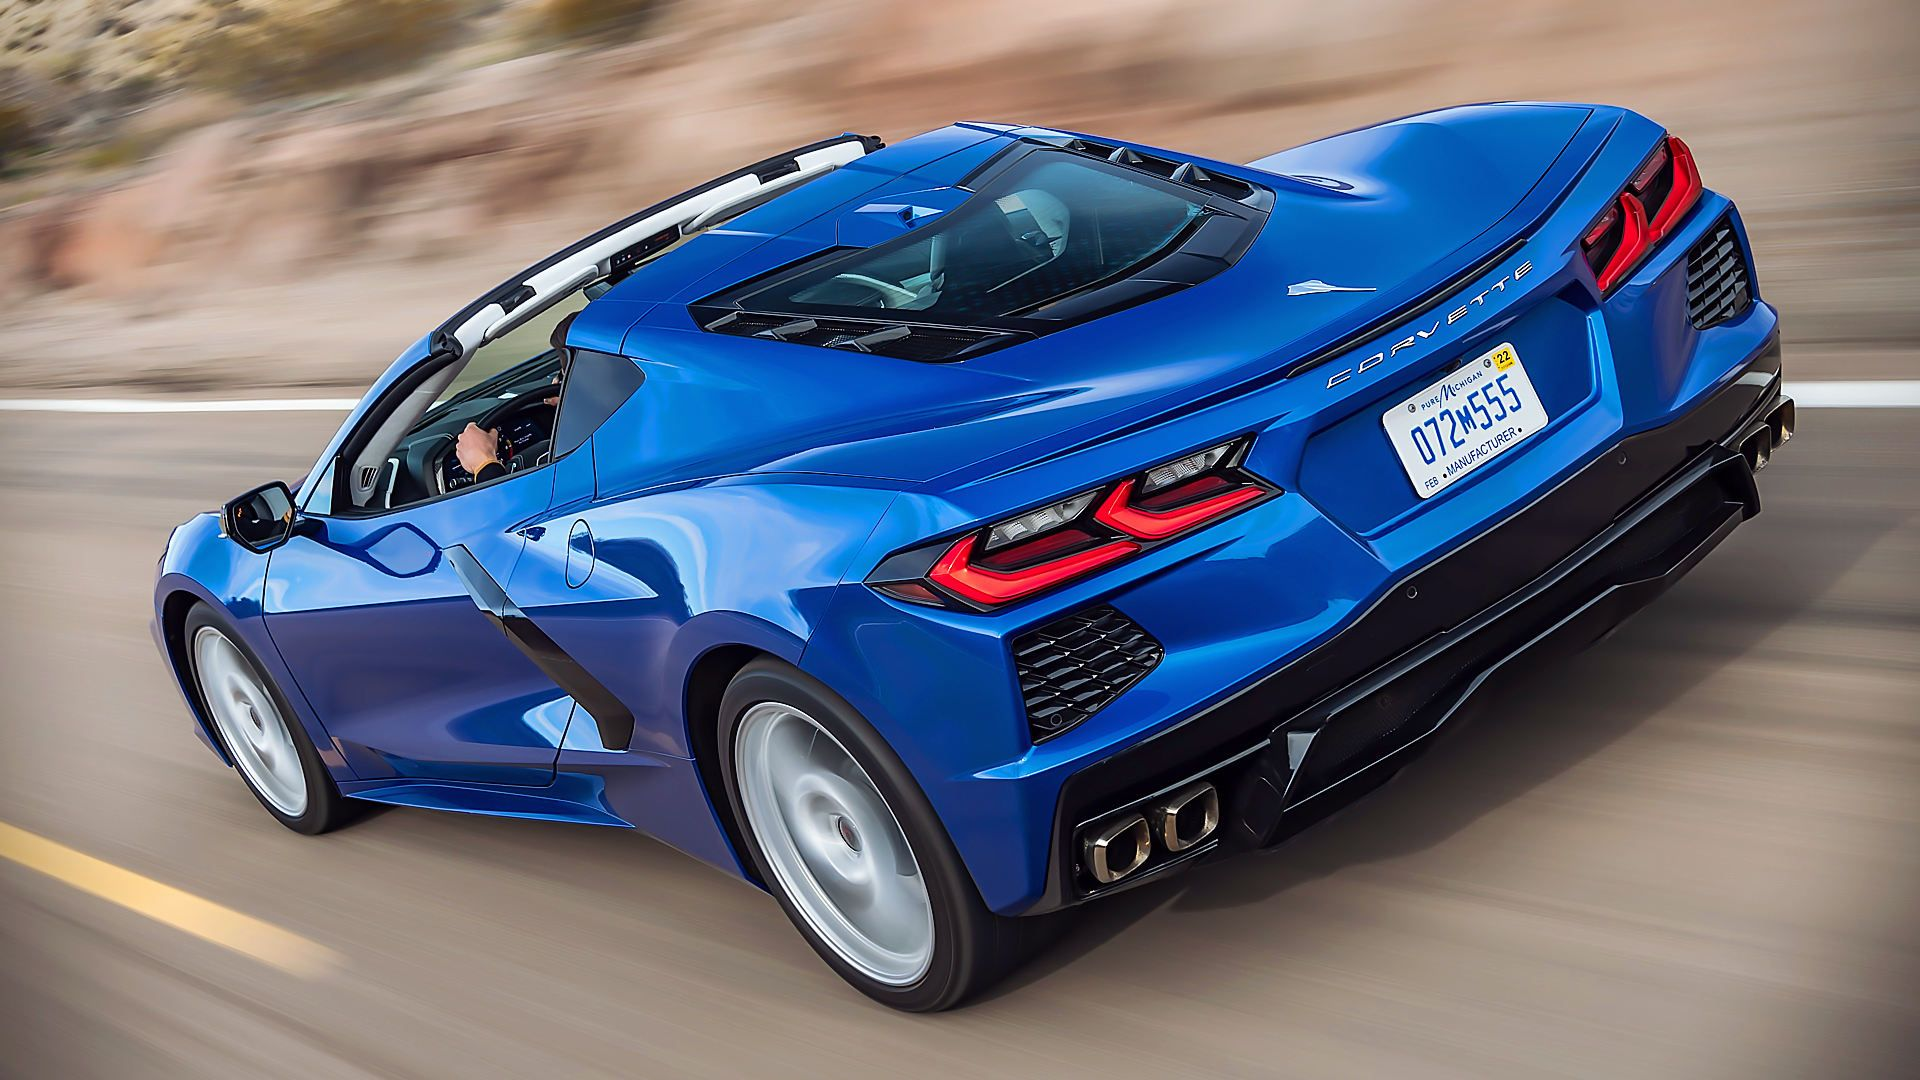 2020 Chevrolet Corvette Stingray C8 Coupe Convertible Wallpaper Corvette Stingray Chevrolet Corvette Stingray Chevrolet Corvette